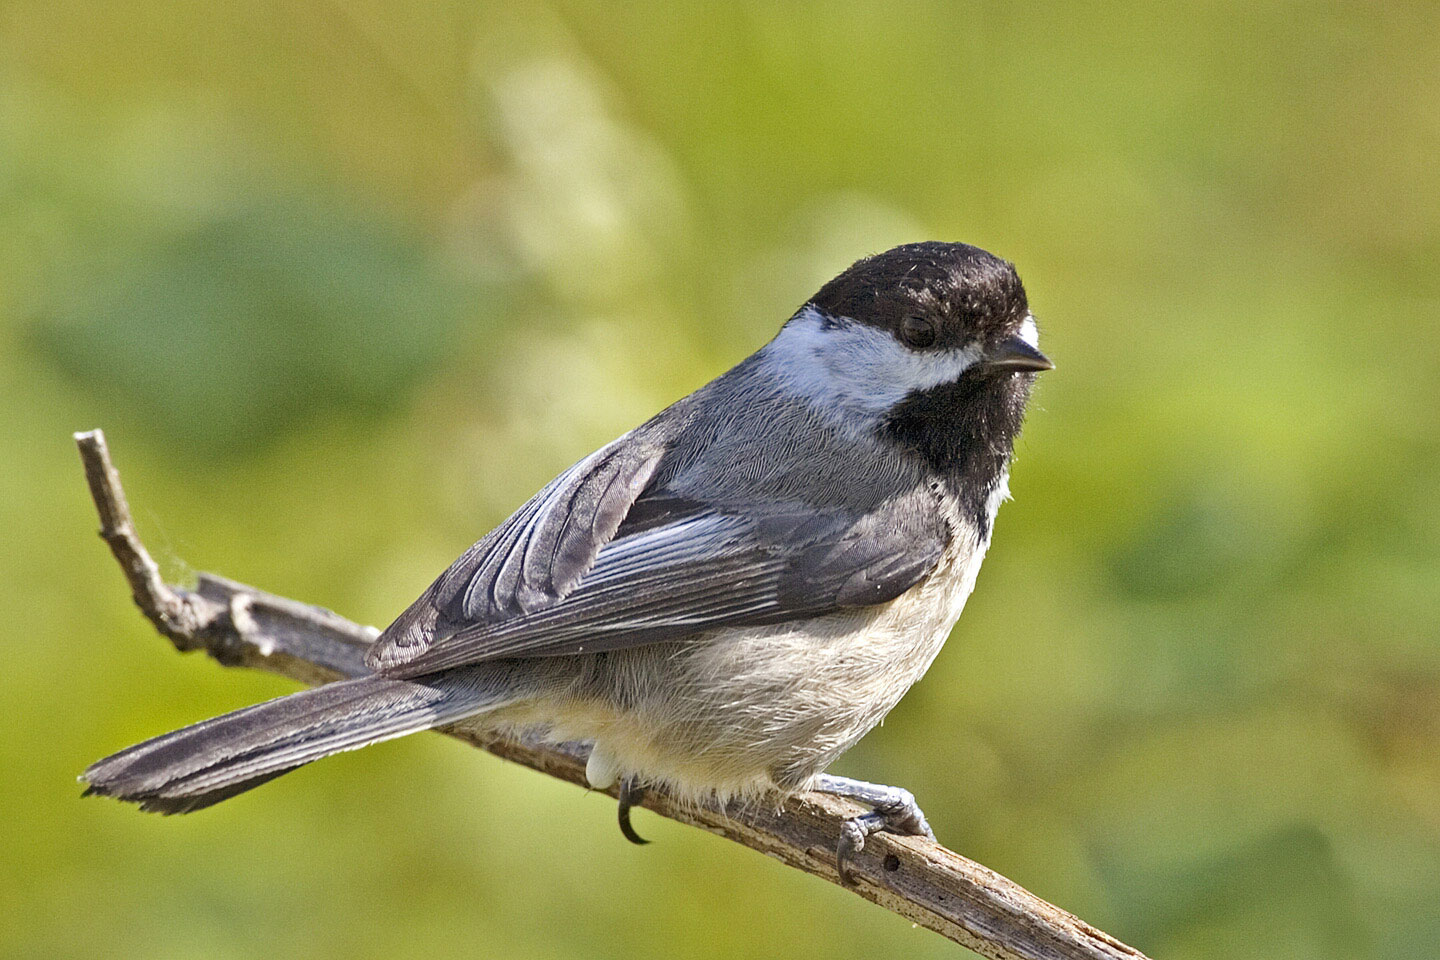 A chickadee perched on a twig